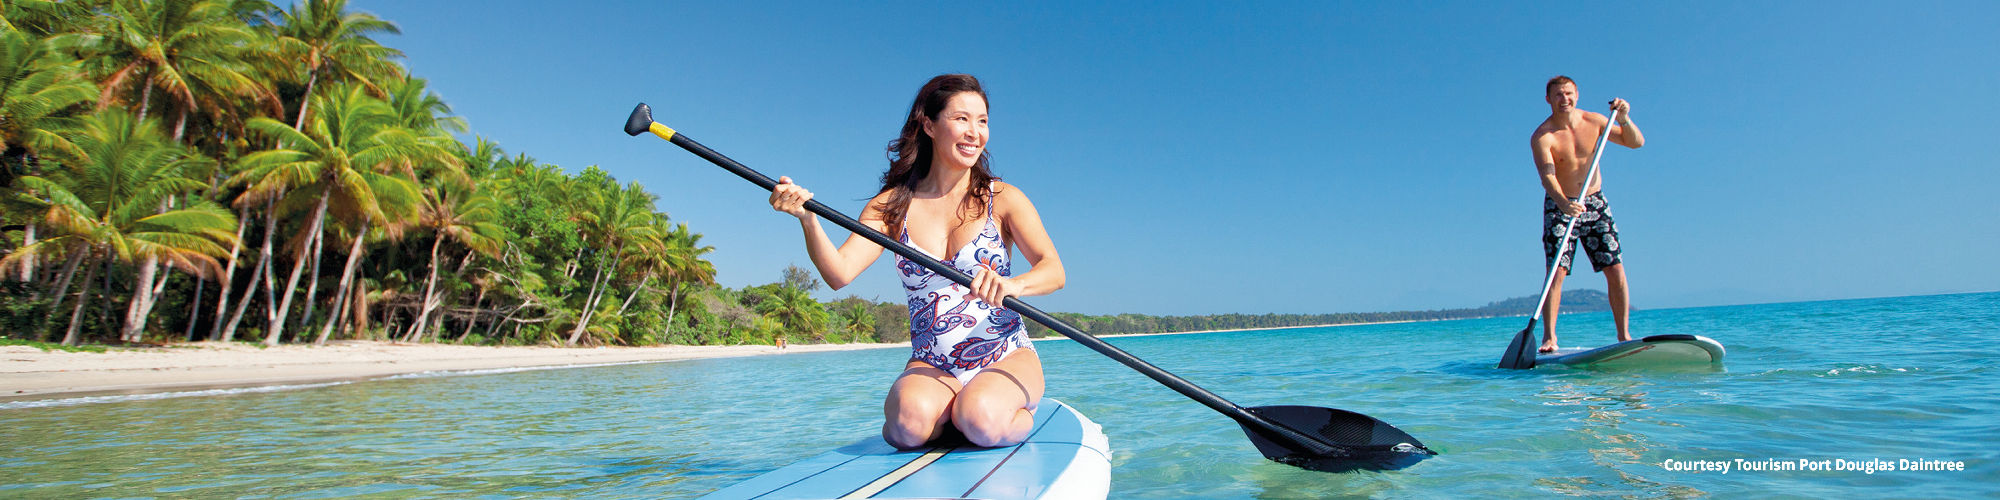 Port Douglas Watersports - Many Choices